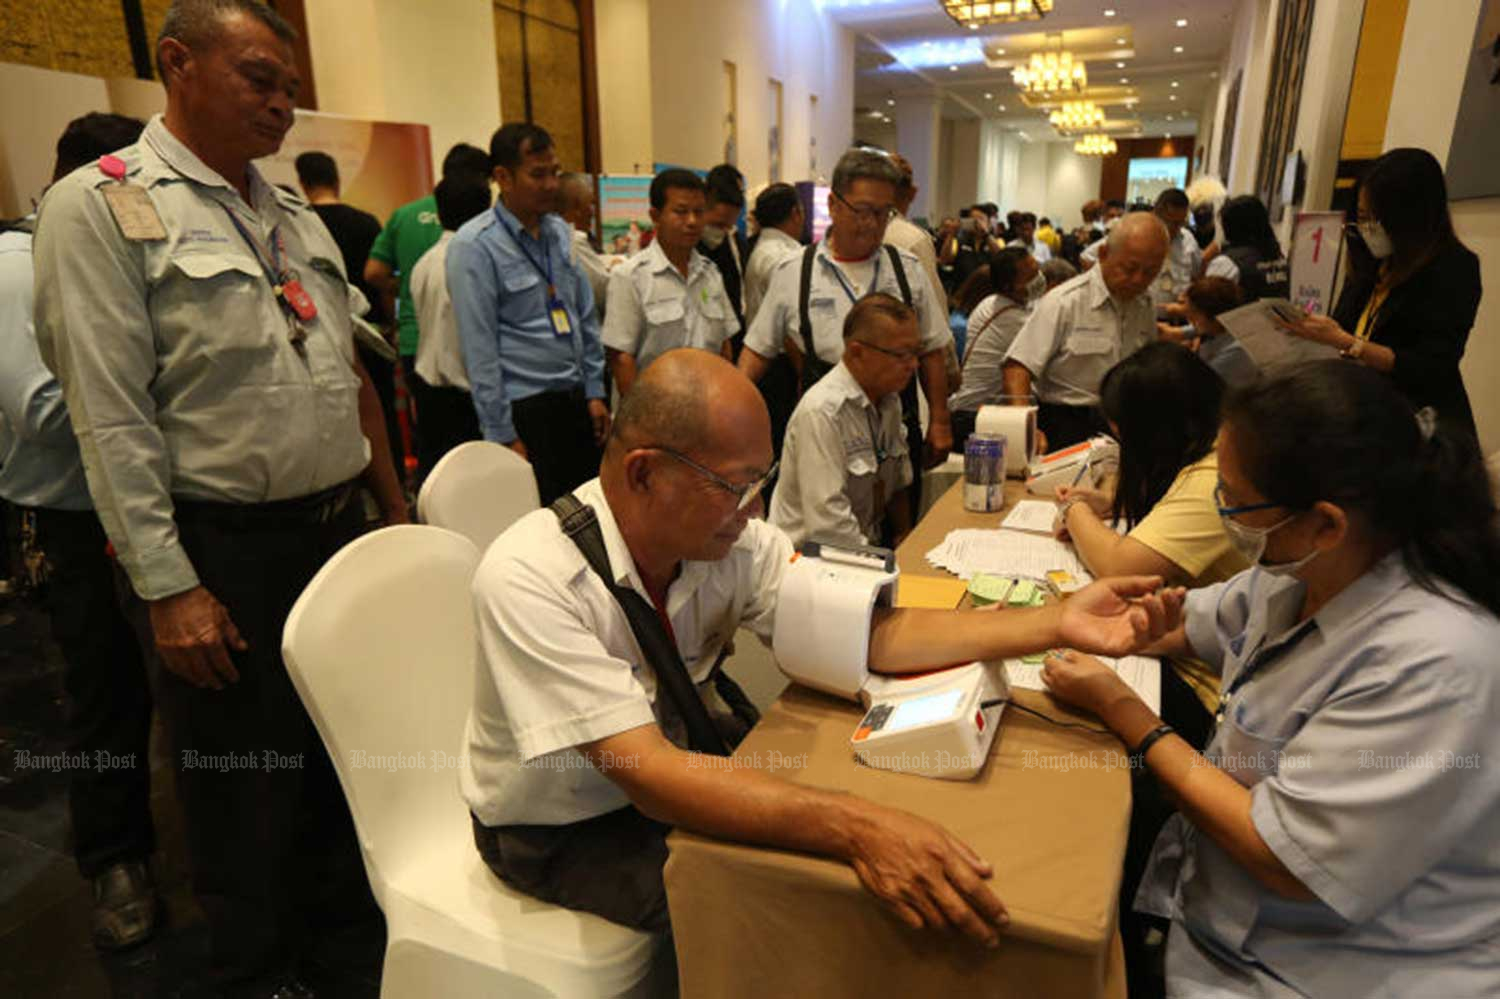 Taxi drivers receive medical checkups at Novotel Suvarnabhumi Airport Hotel on Jan 27 as part of measures to control the outbreak of coronavirus. (Bangkok Post photo)